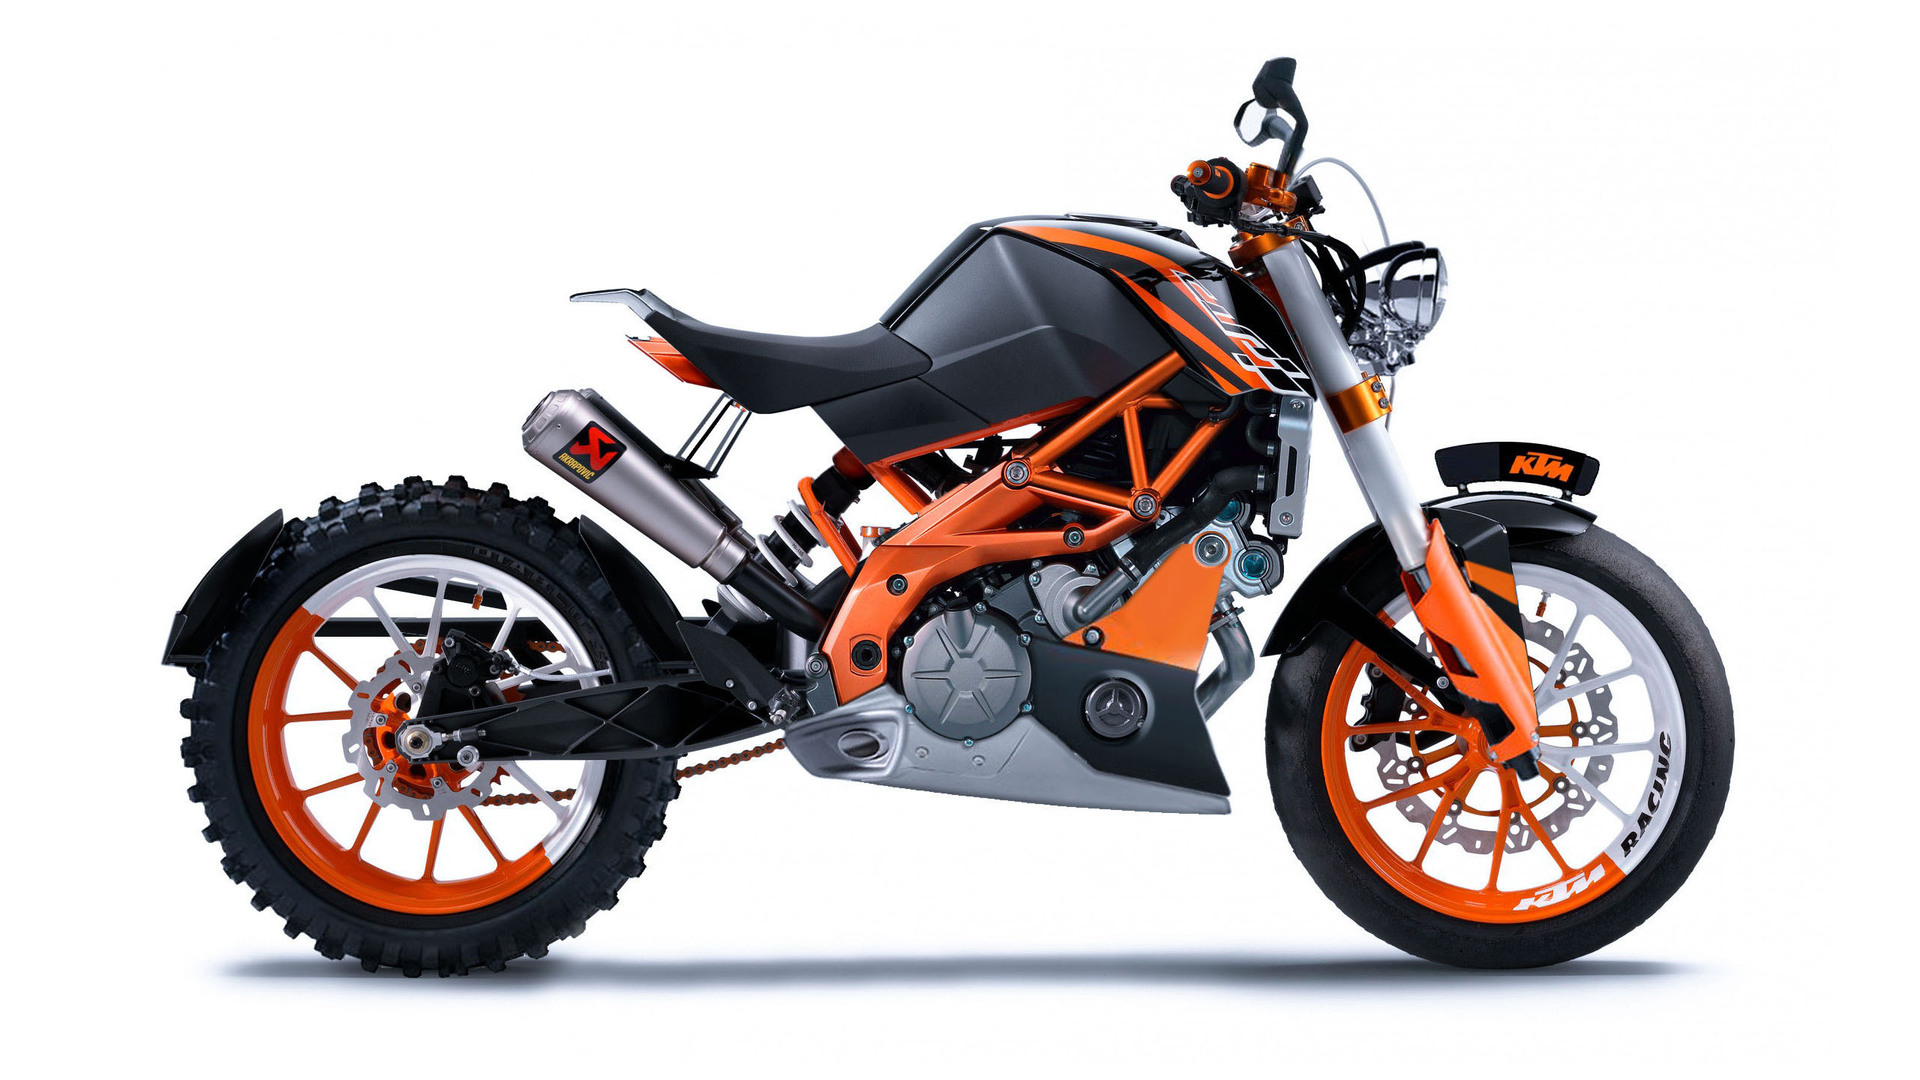 1920x1080 Ktm Duke 125cc Laptop Full Hd 1080p Hd 4k Wallpapers Images Backgrounds Photos And Pictures